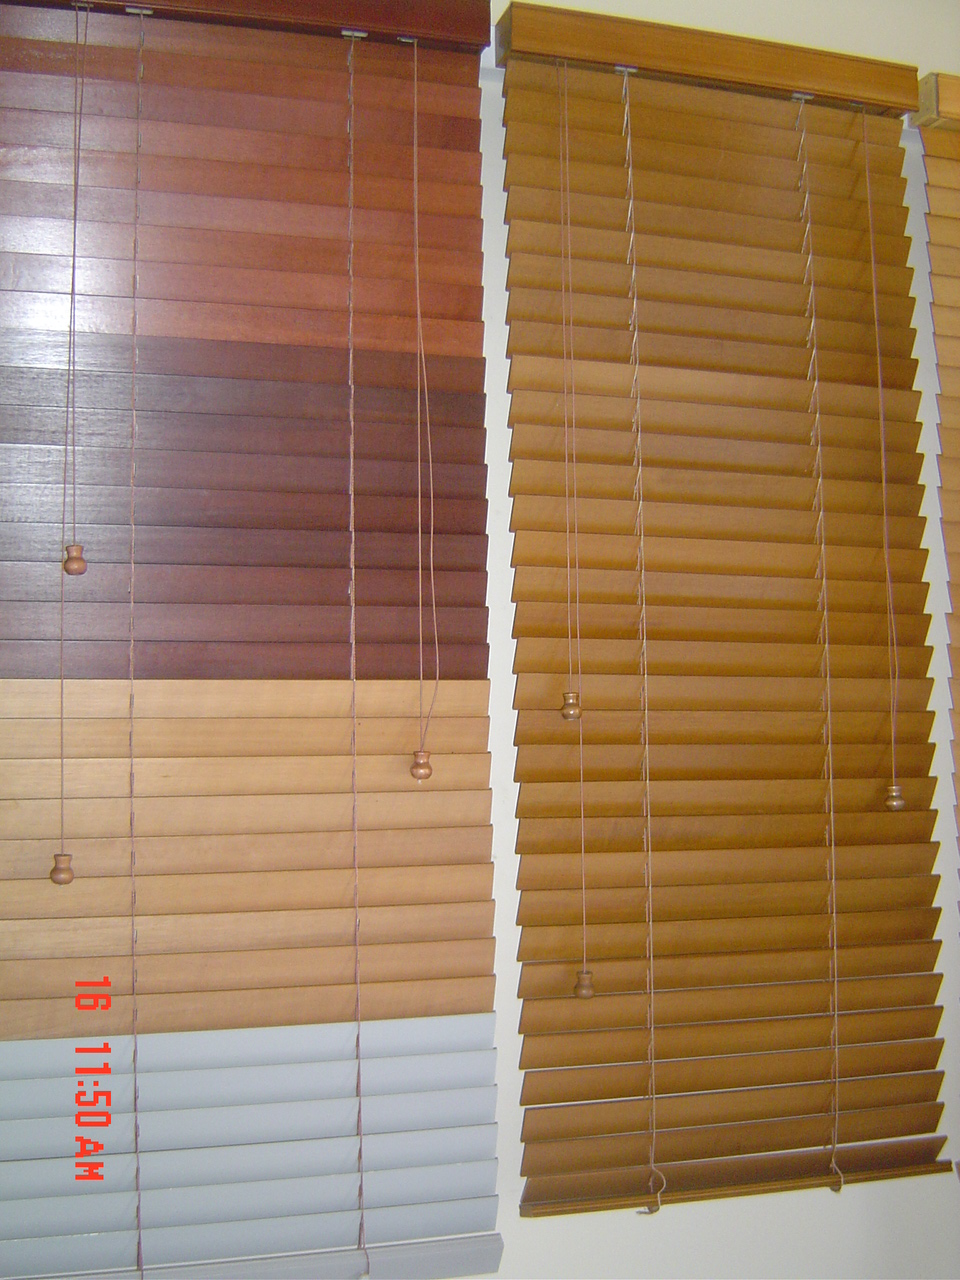 wooden blinds jual krey kerei kayu tirai jendela wooden blinds merk classic wood untuk. Black Bedroom Furniture Sets. Home Design Ideas